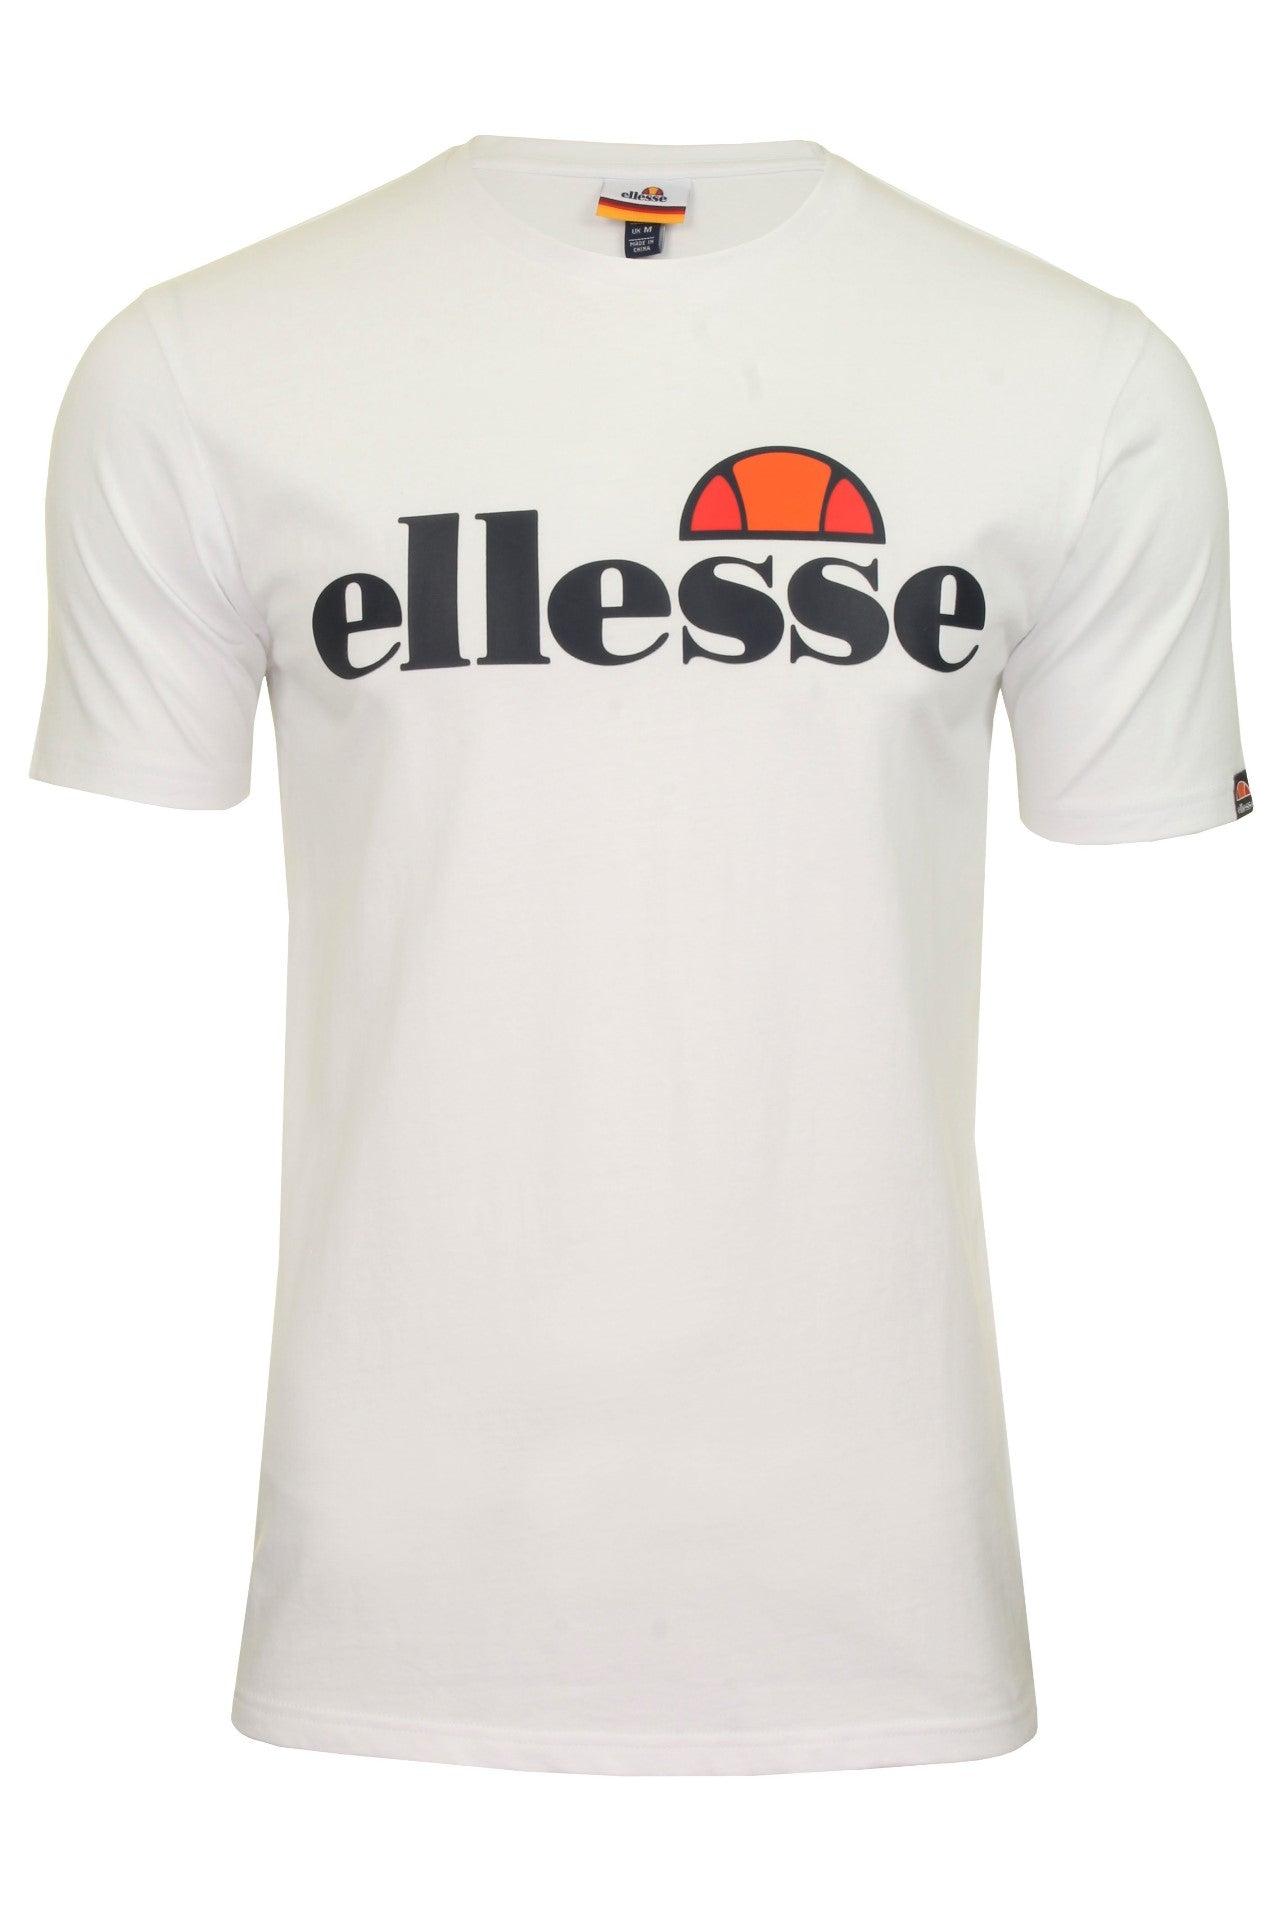 Ellesse Mens Logo Front Crew Neck T-Shirt 'PRADO' - Short Sleeved_01_Shc07405_White